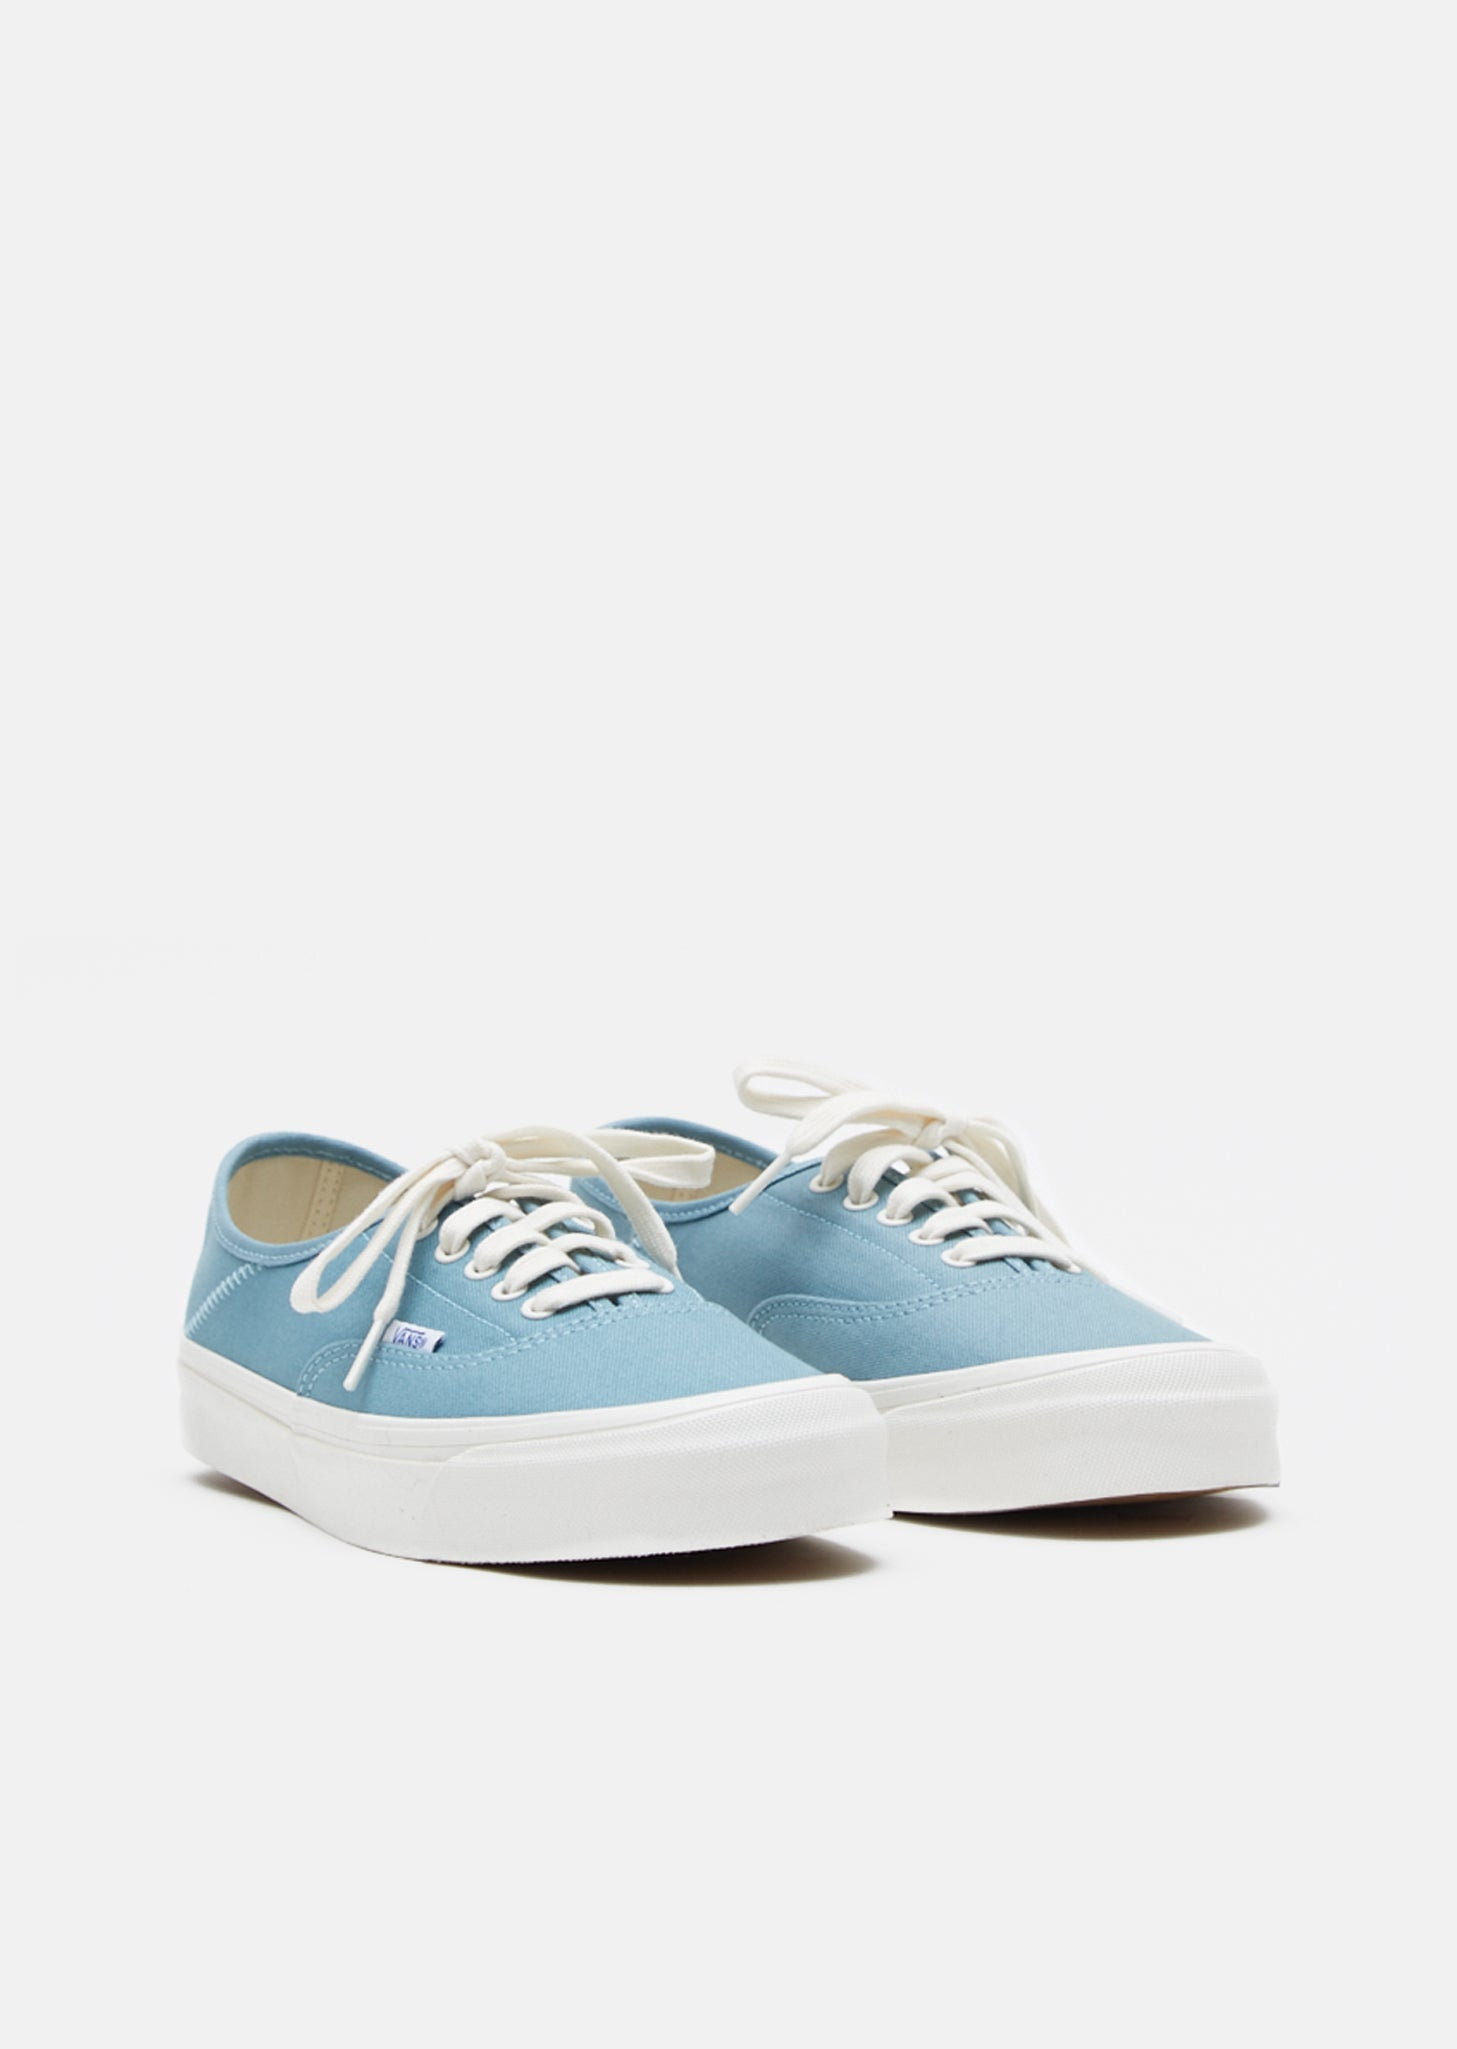 8666fce0171728 OG Canvas Smoke Blue 43 LX by Vans– La Garçonne